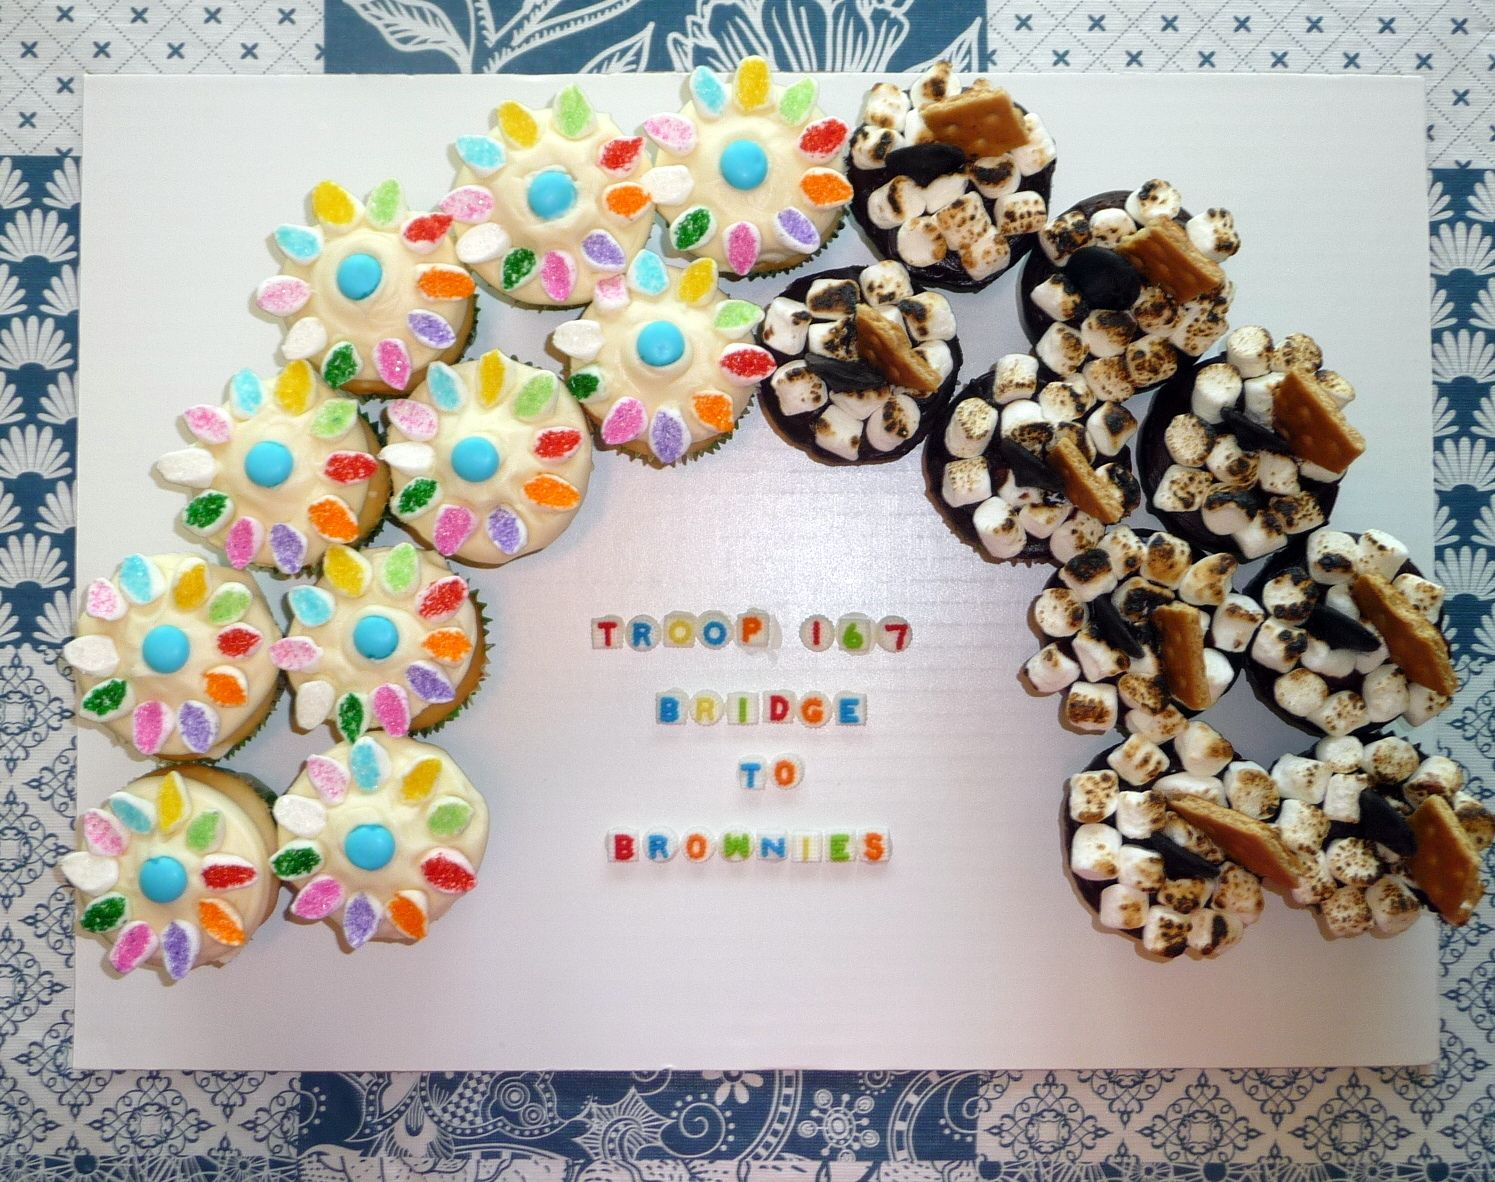 """I made these for my daughter's """"Bridge to Brownies ..."""